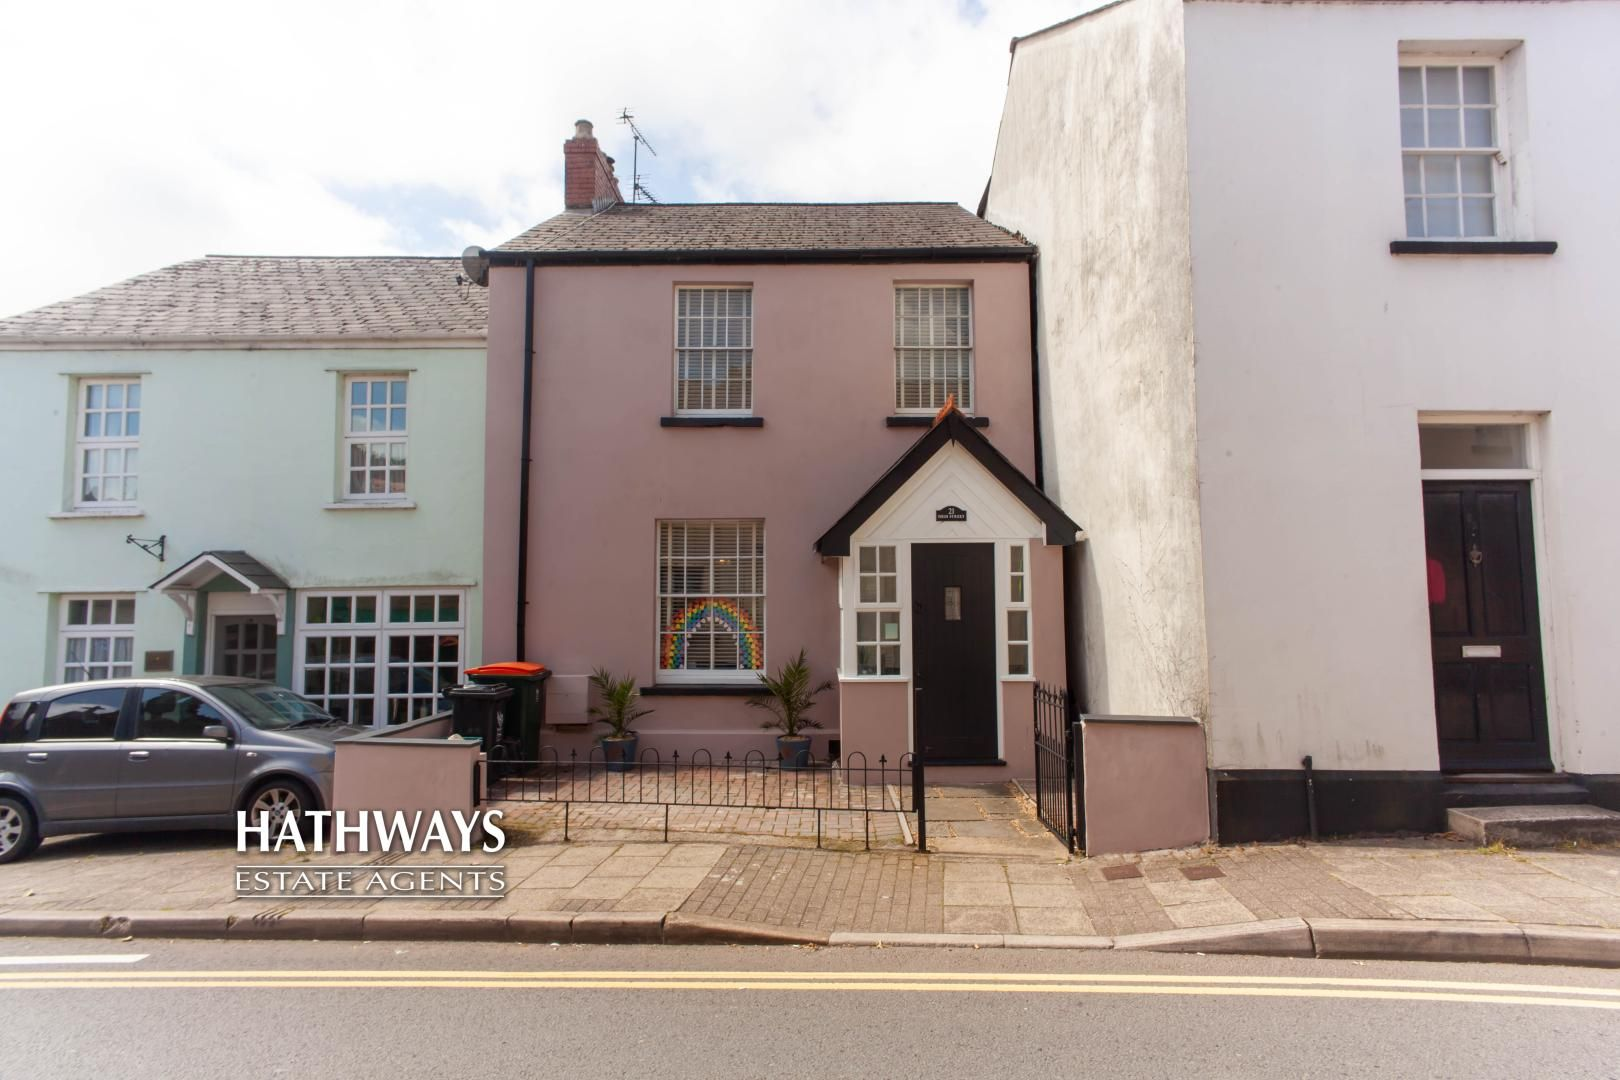 4 bed house for sale in High Street - Property Image 1